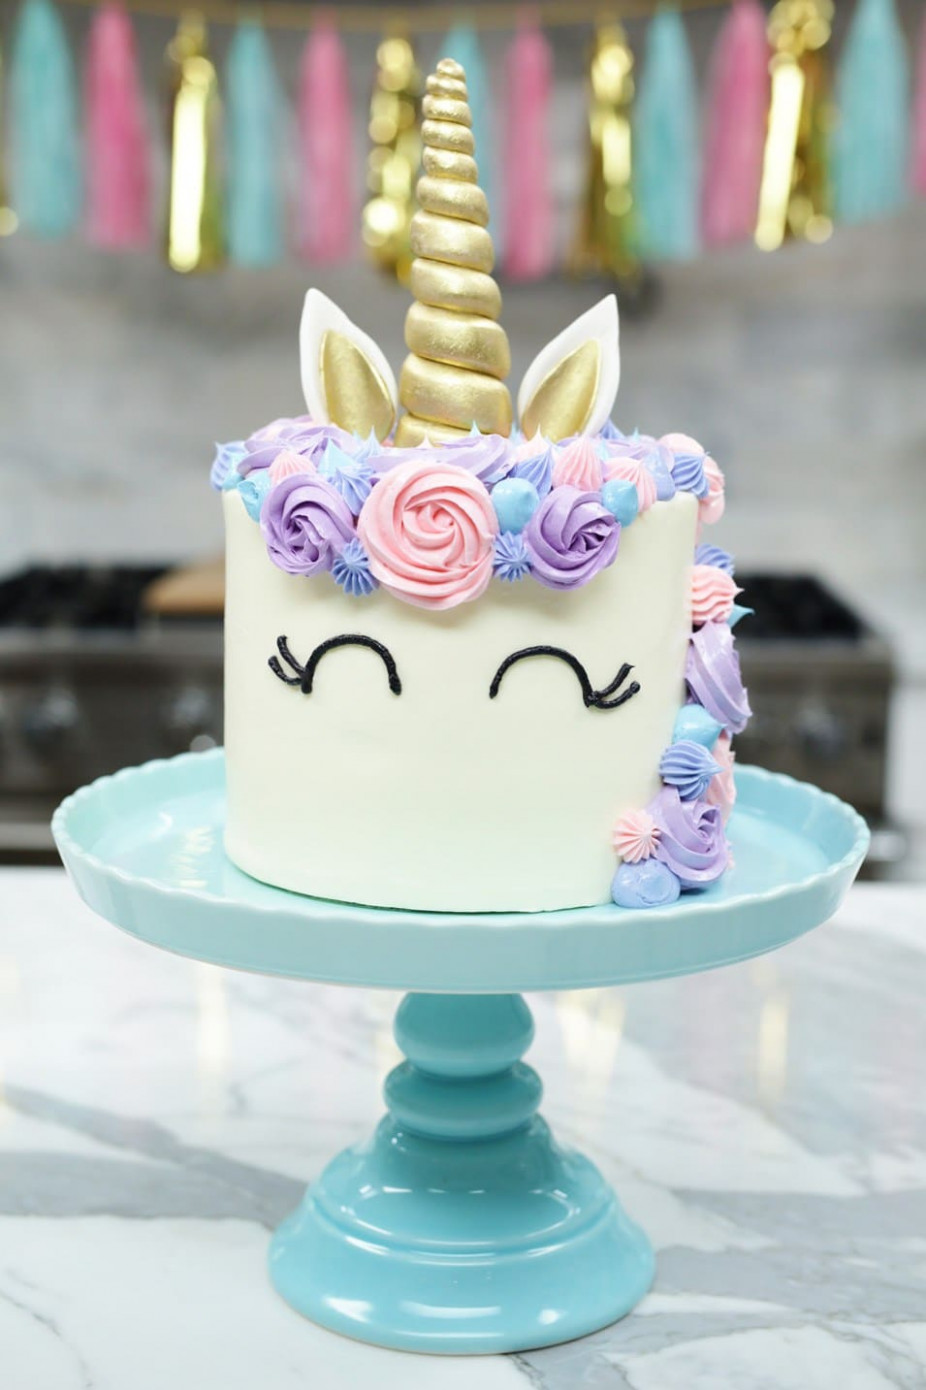 12 Magical Unicorn Party Ideas | Pizzazzerie - Unicorn Party Food Recipes